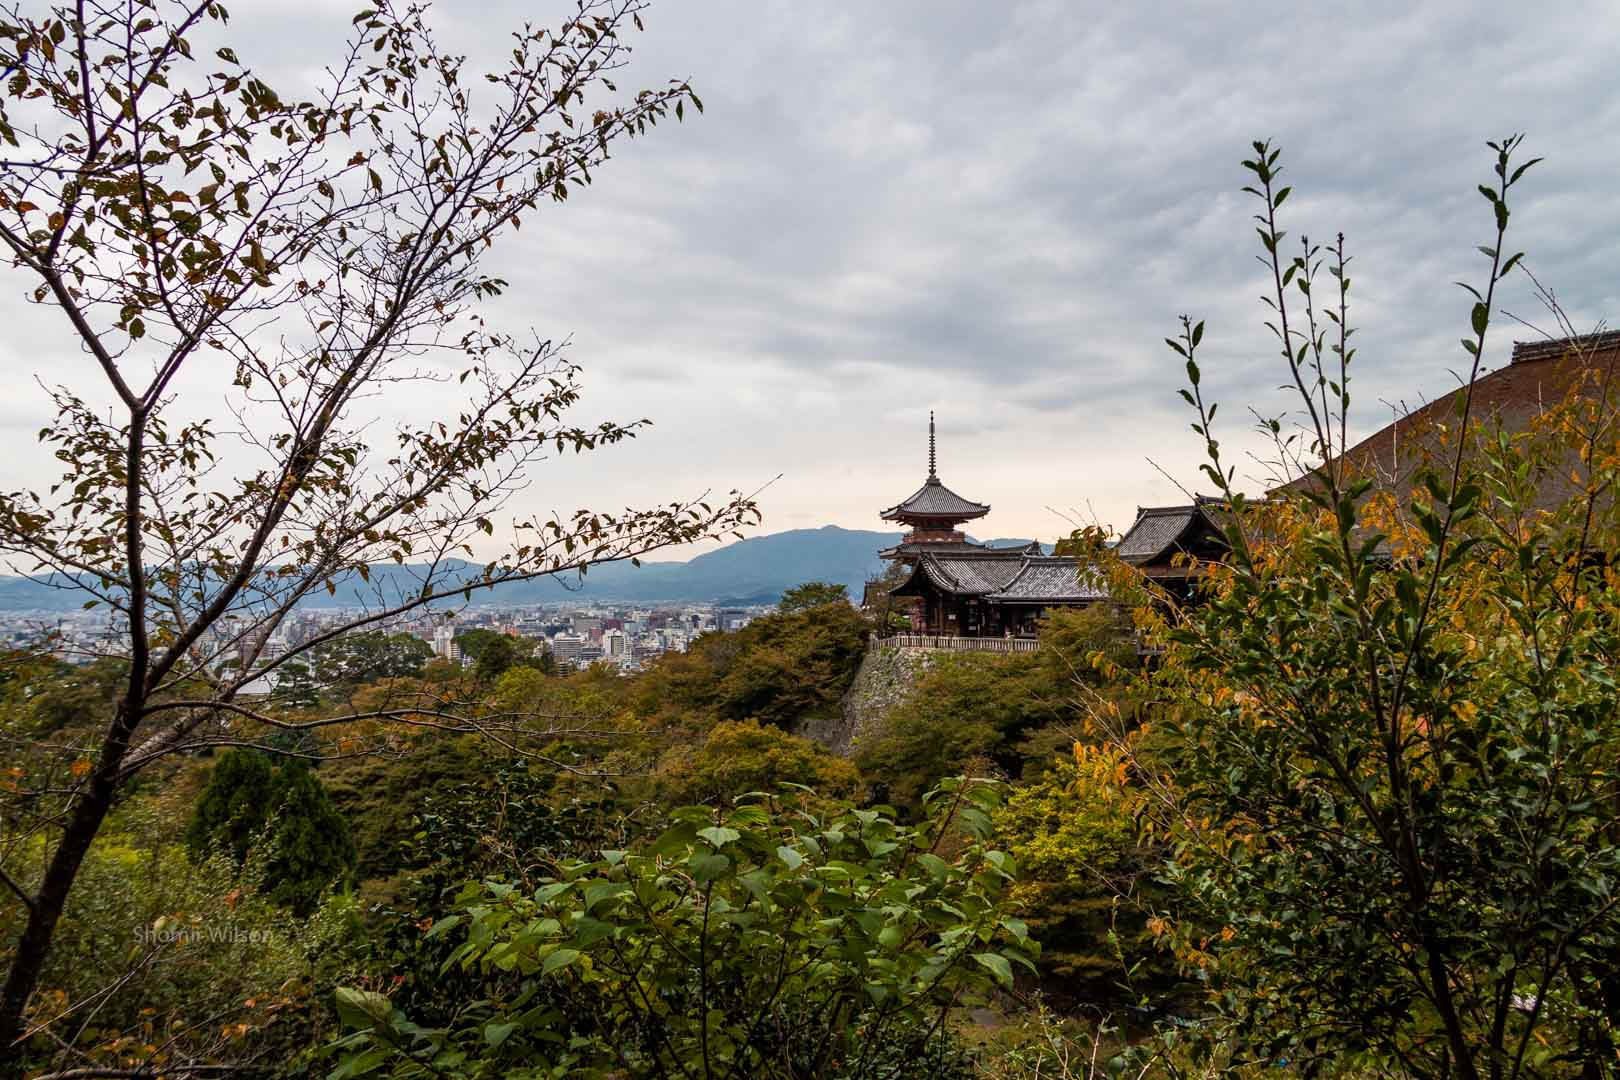 Buddhist temple on a hill from a nearby perspective with the view surrounded by bushes and trees; a city below and mountains in the distance